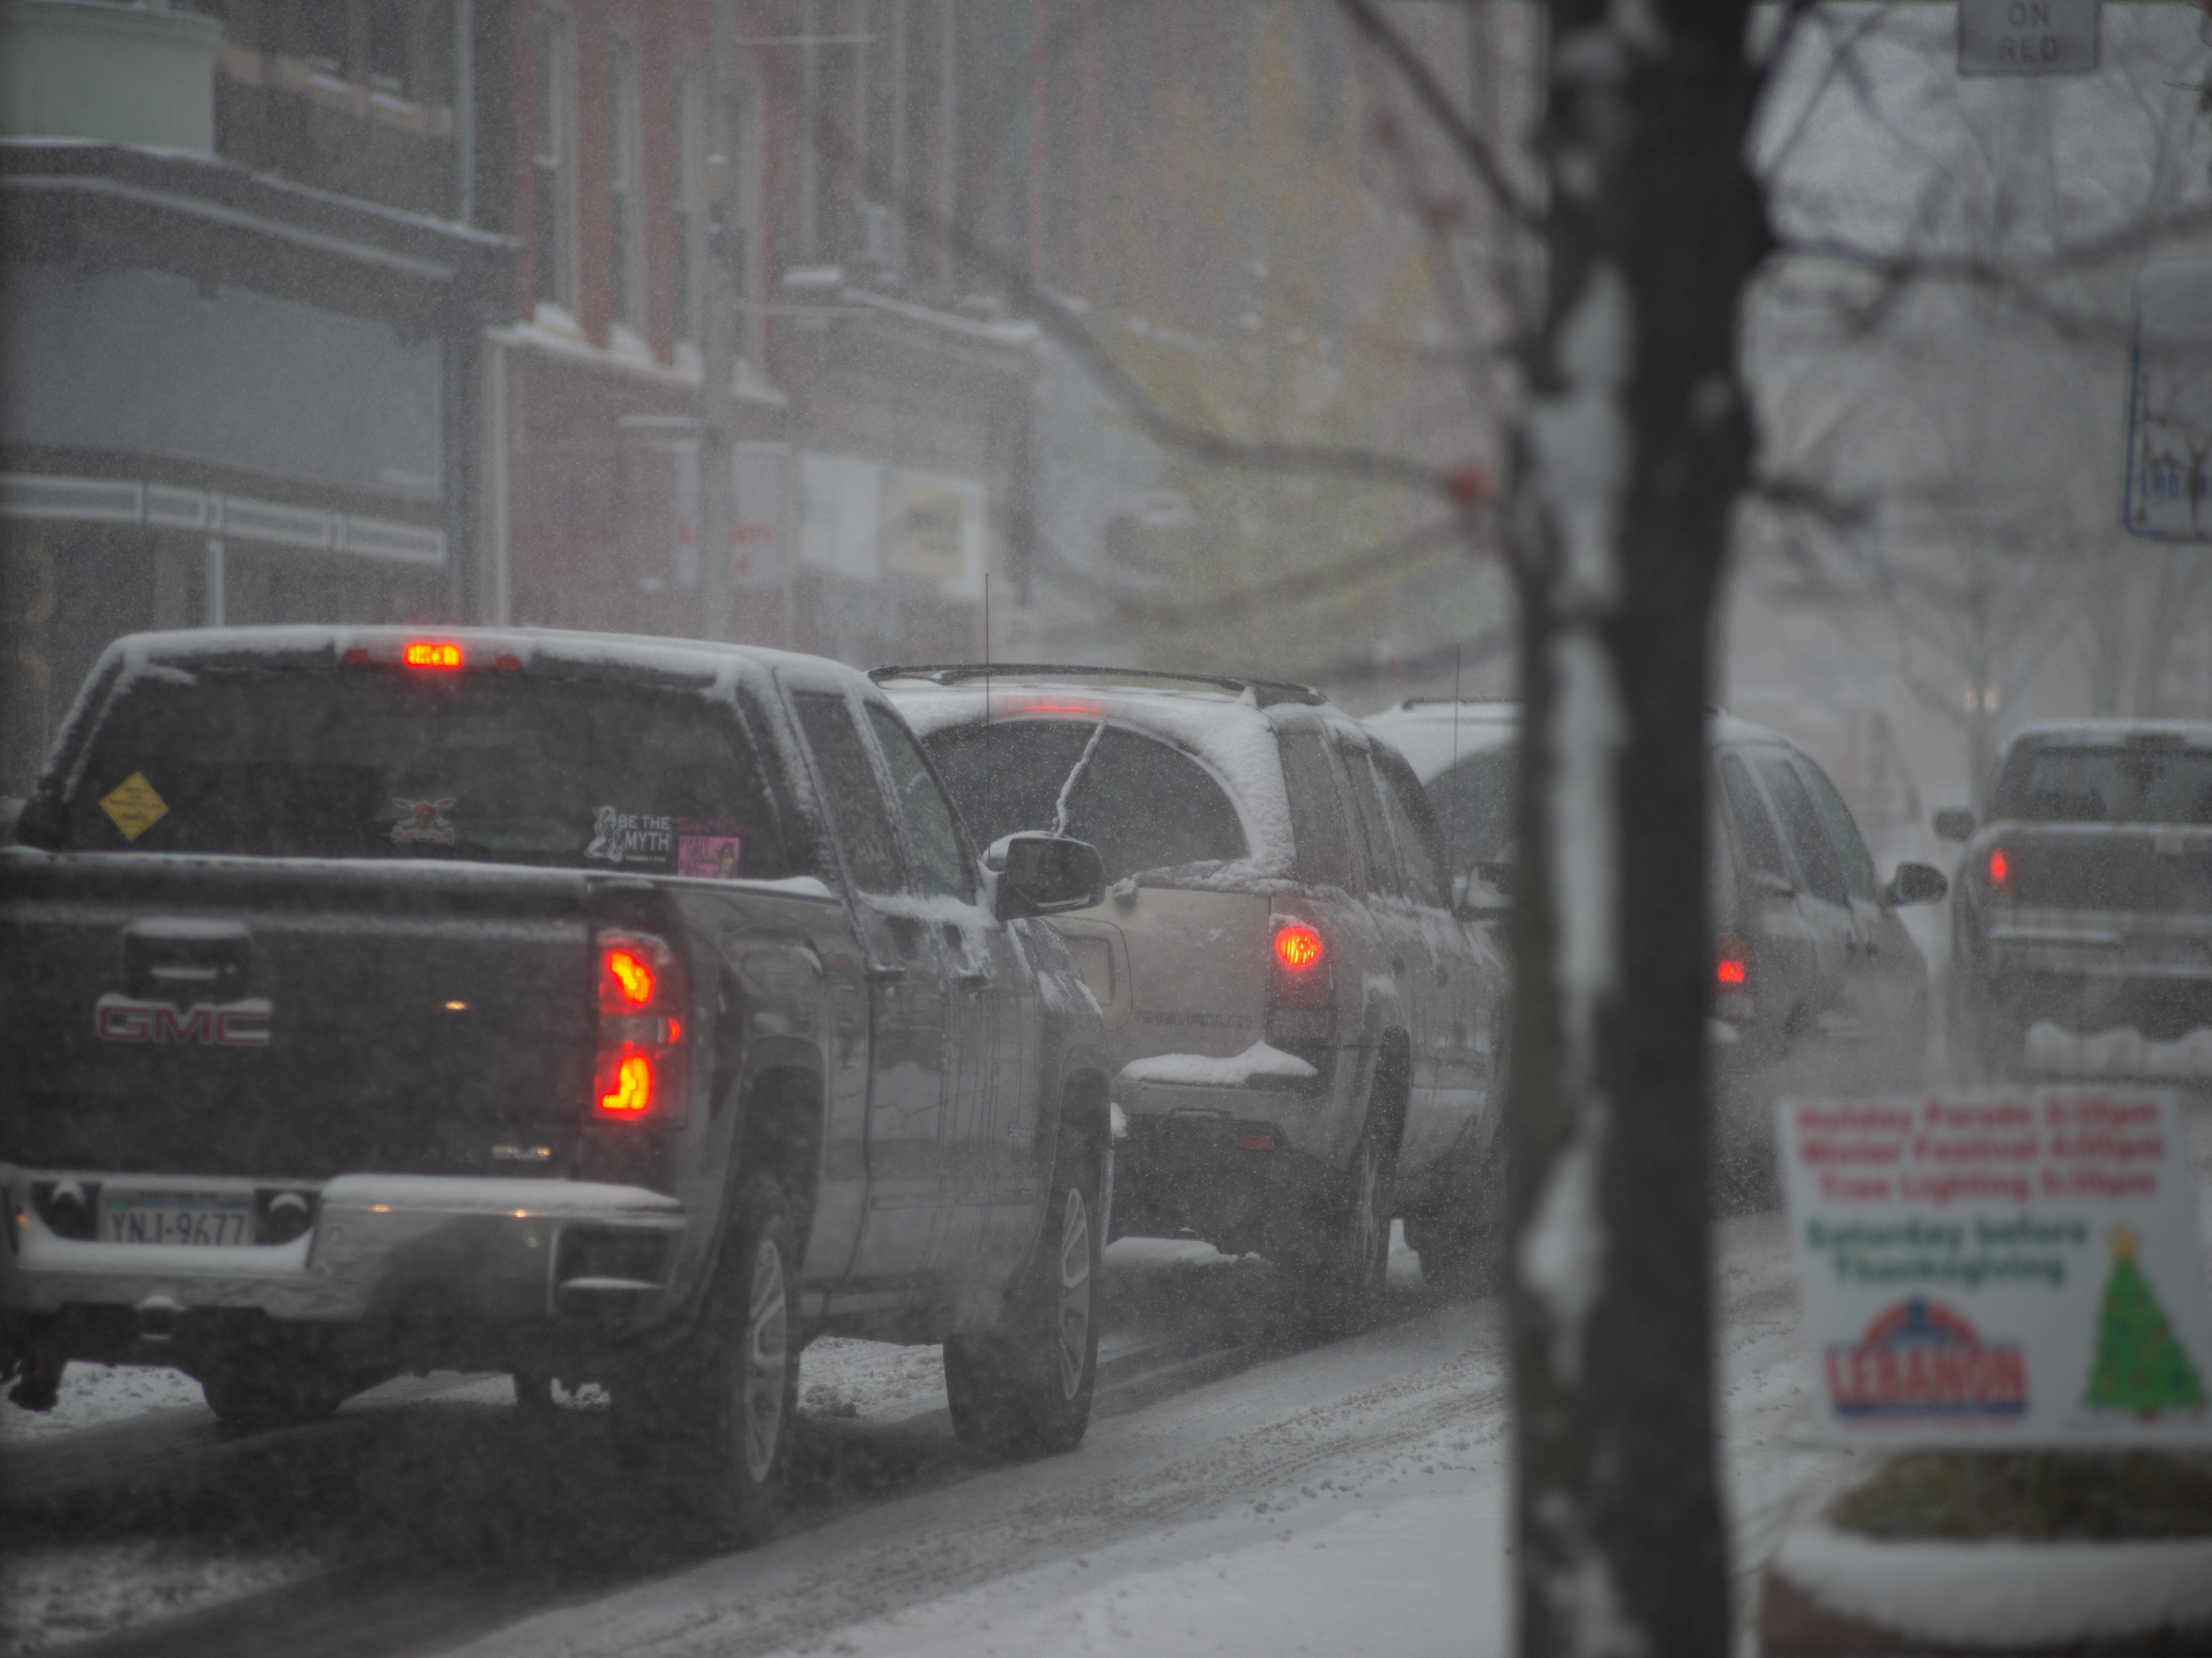 The first snowstorm of the year struck Lebanon and the region on Thursday, Nov. 15, 2018. About 5 to 7 inches of snow, sleet and freezing rain fell, making travel difficult.